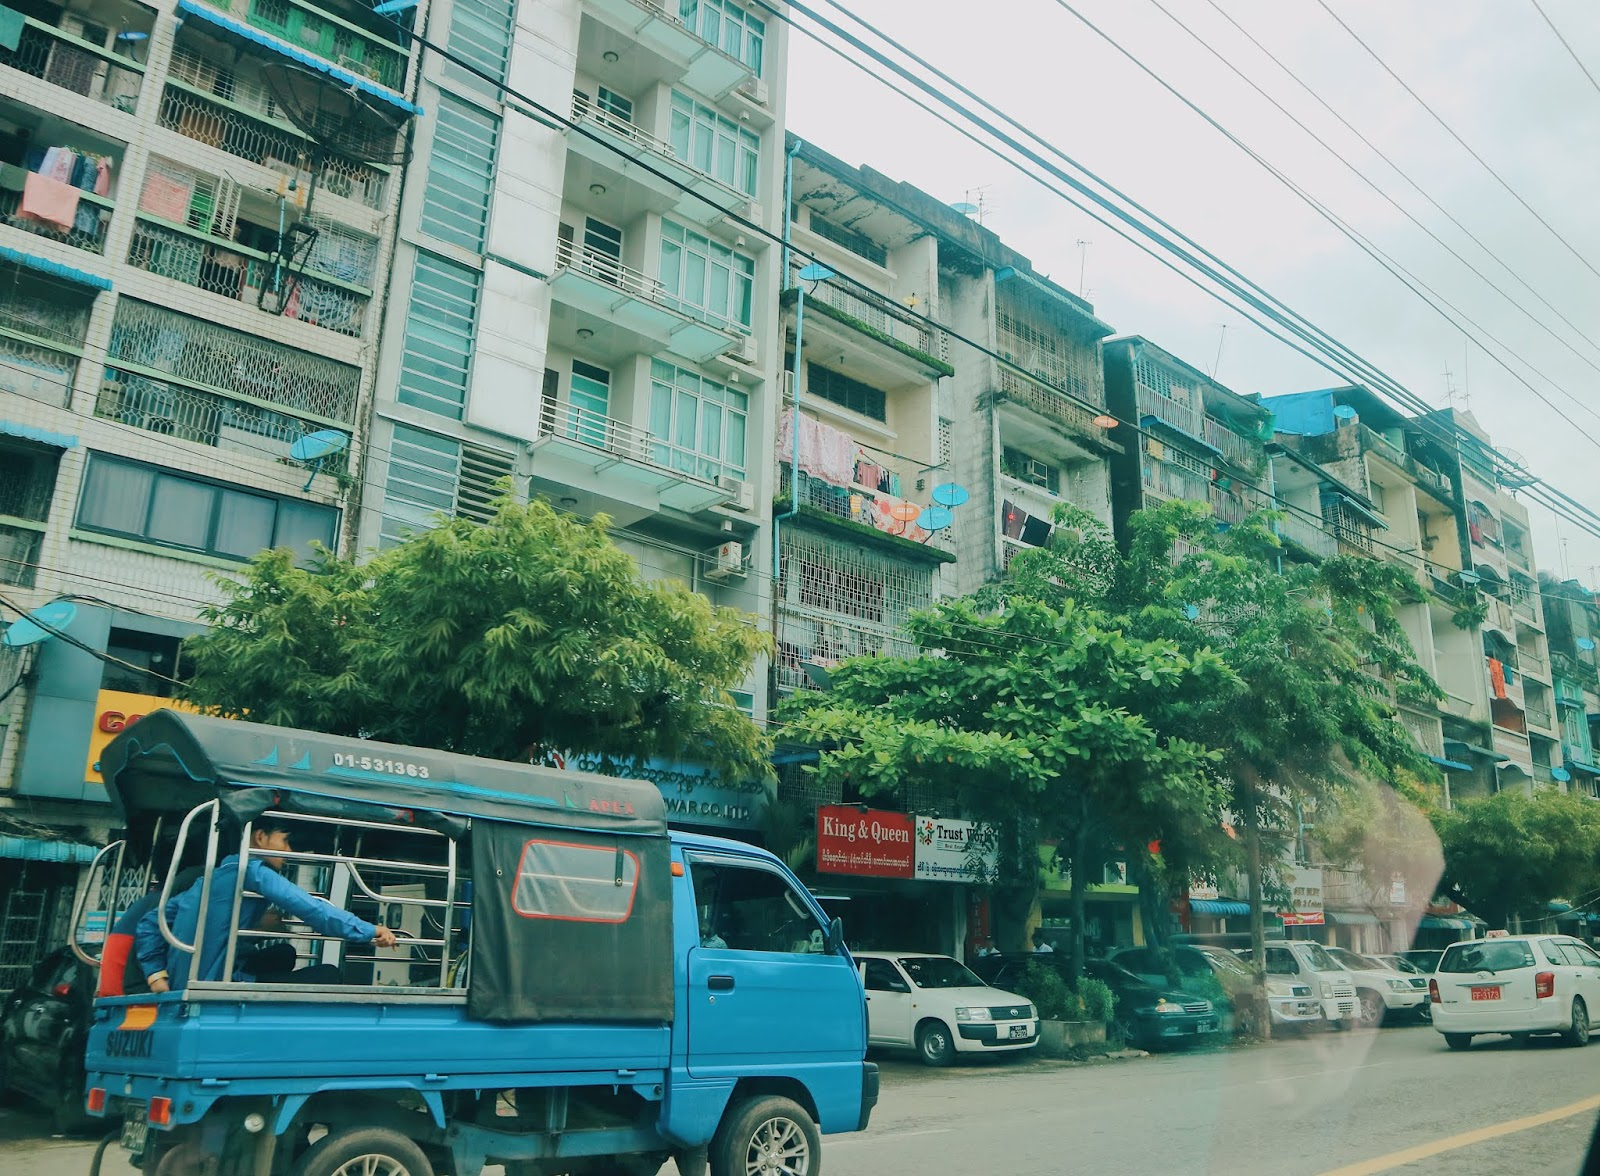 houses and buildings in Yangon downtown